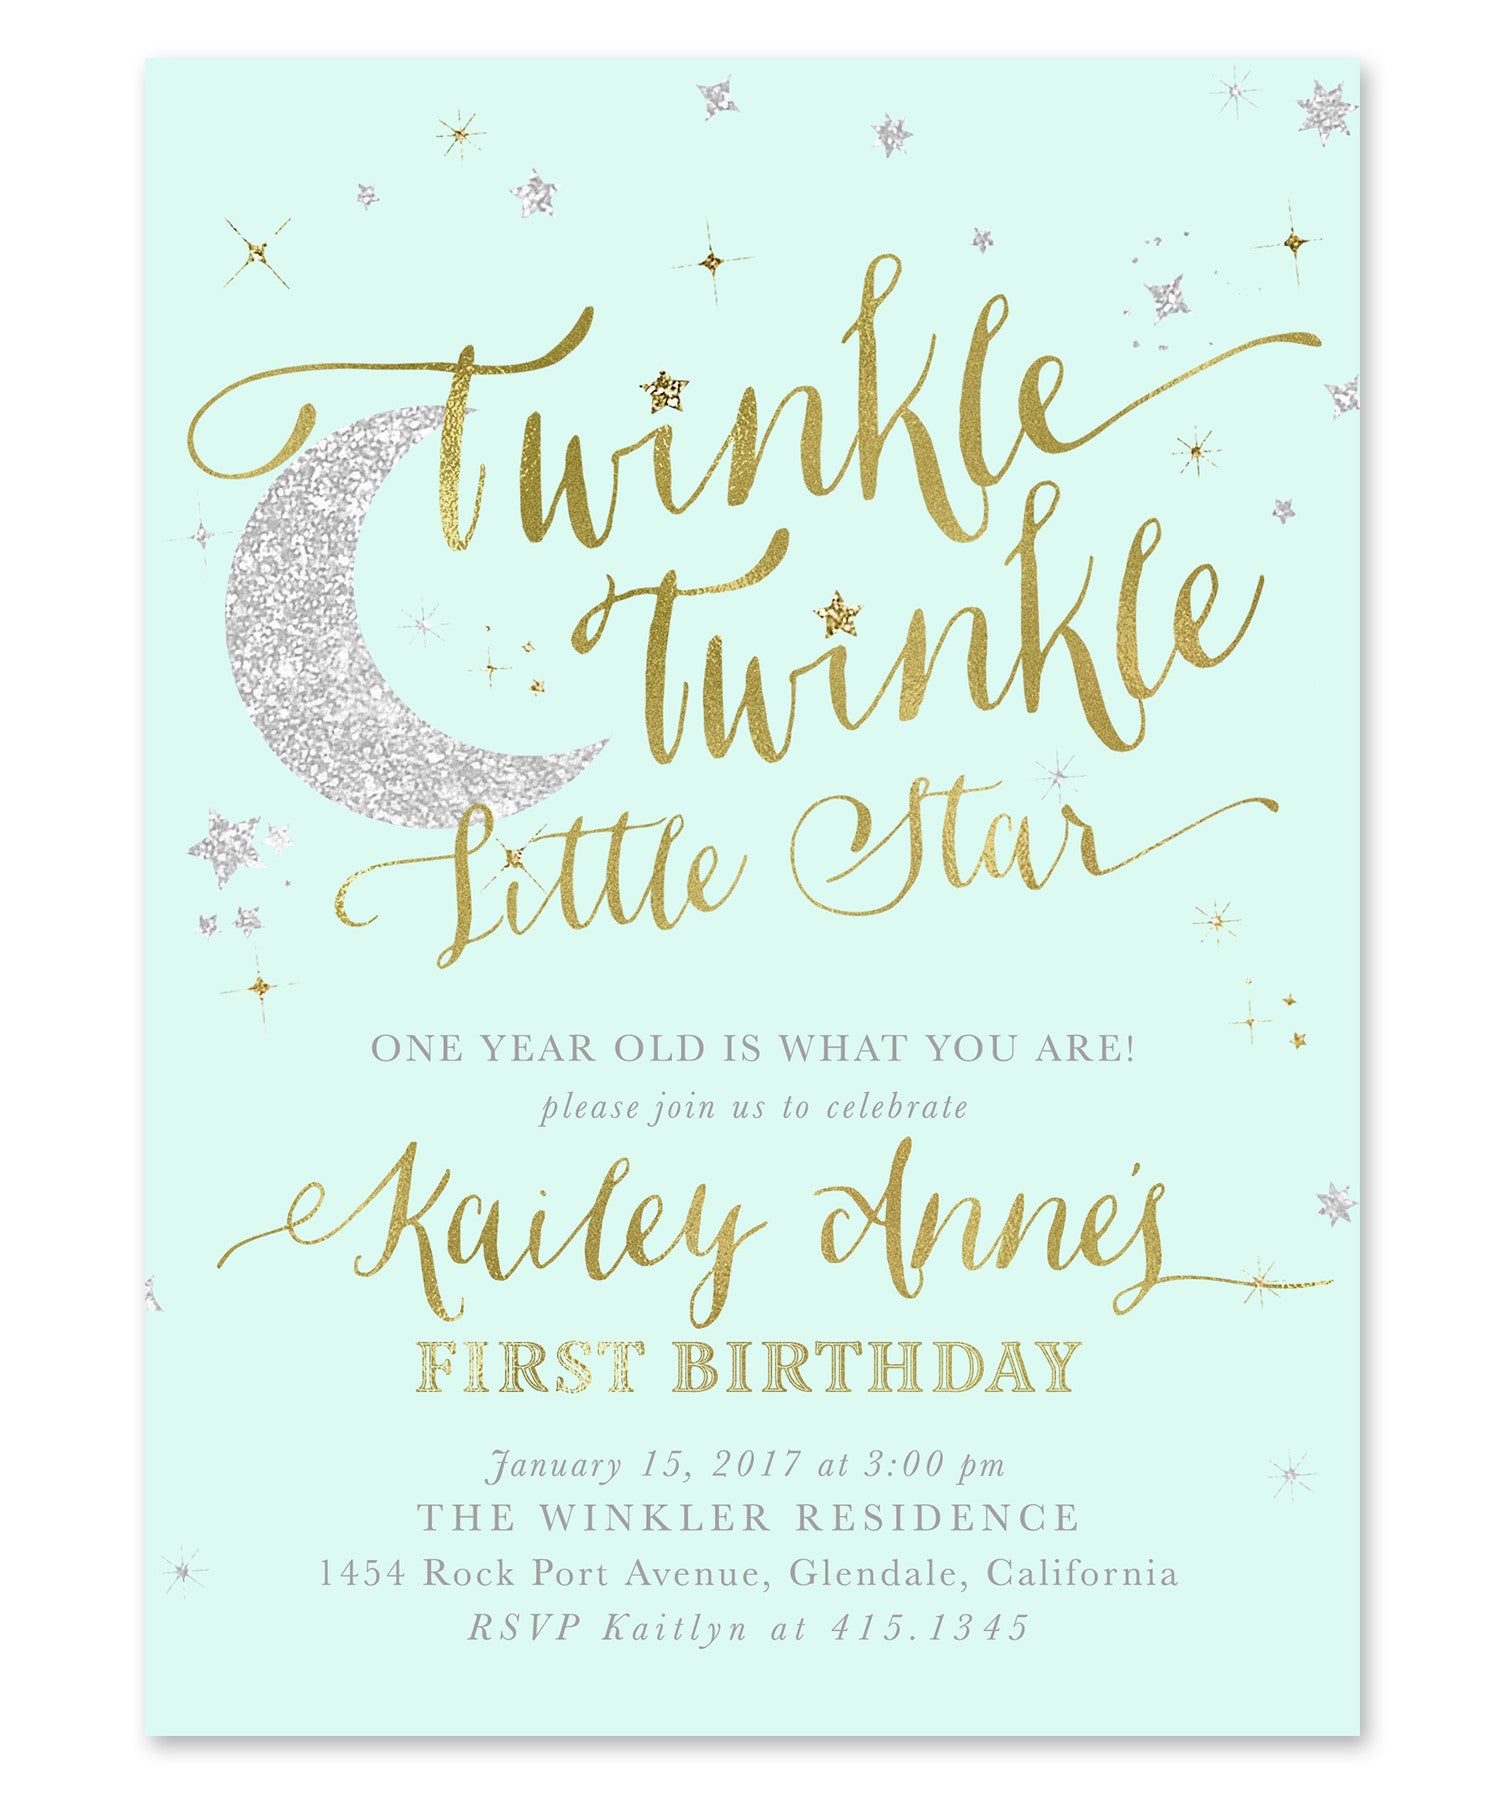 Twinkle Little Star Boy or Girl Birthday Invitation {Mint Green ...